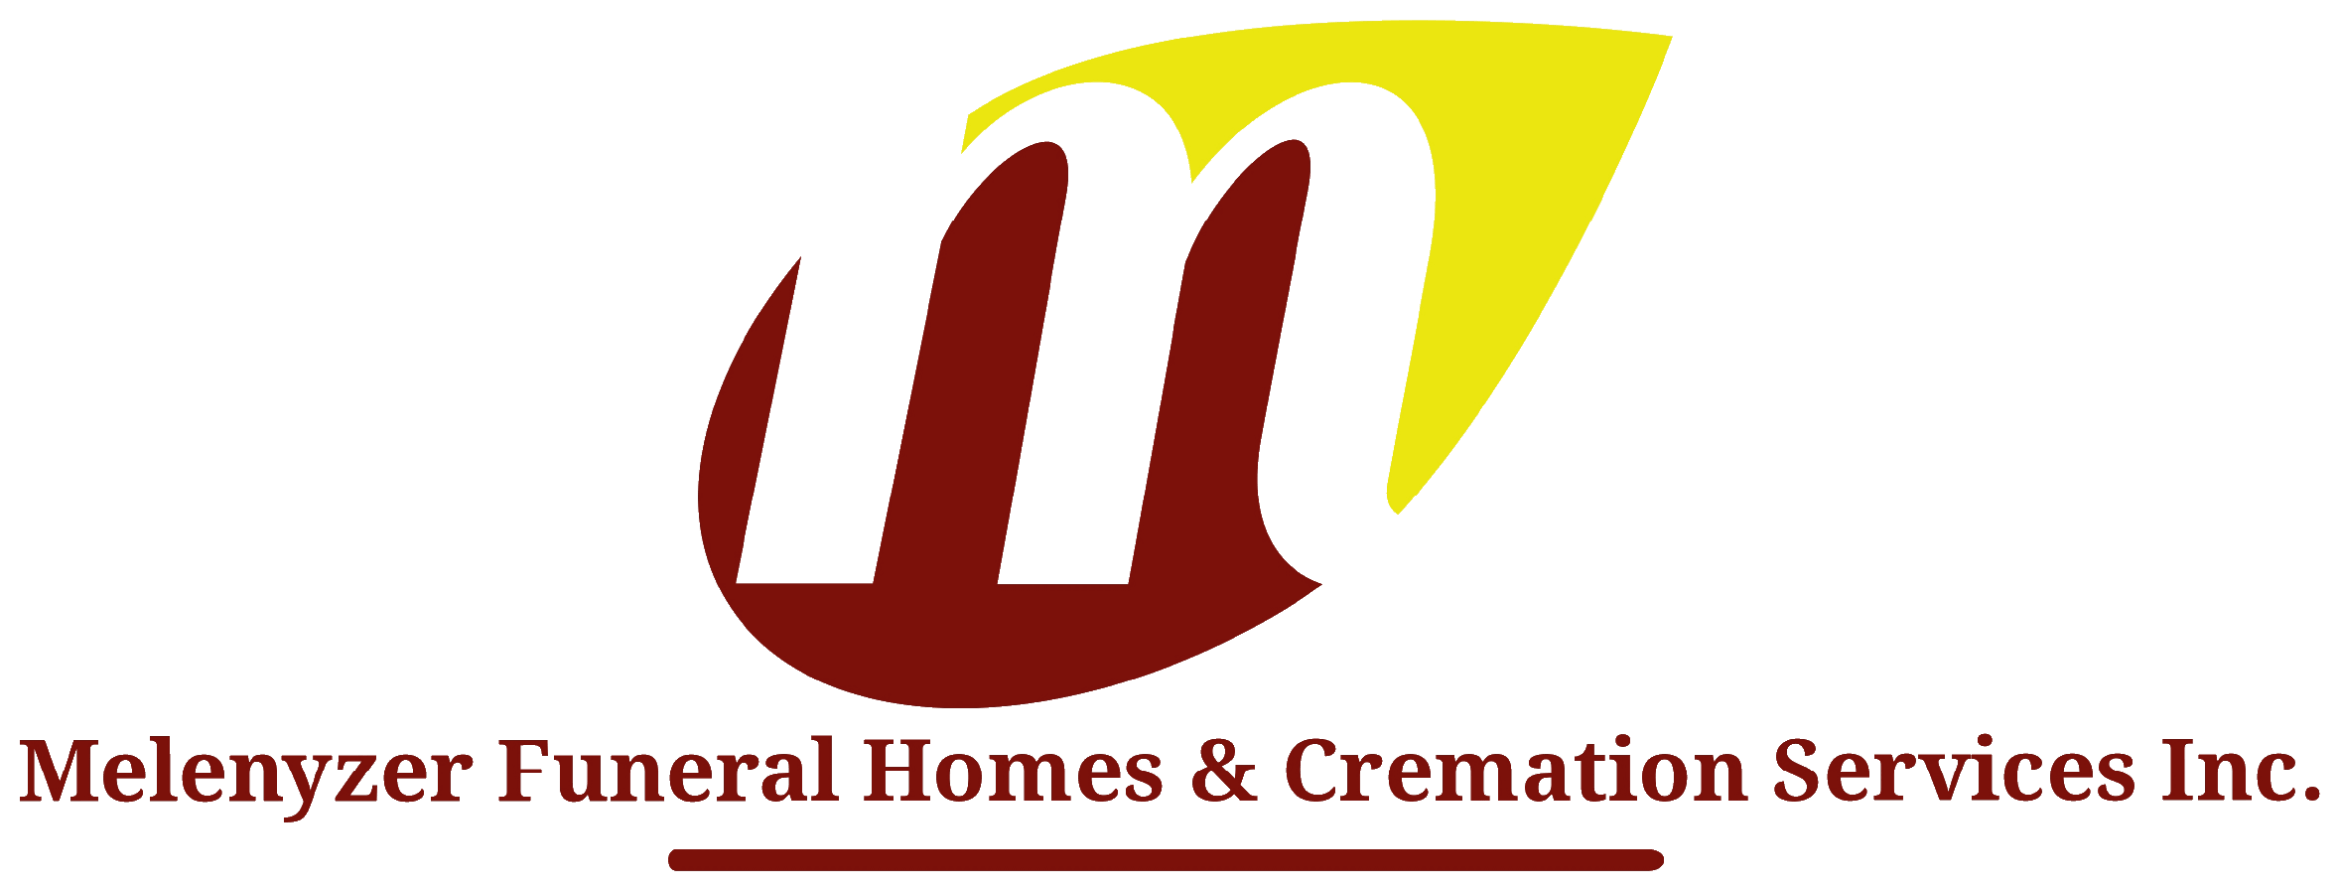 Melenyzer funeral homes cremation services inc charleroi pa send flowers izmirmasajfo Images